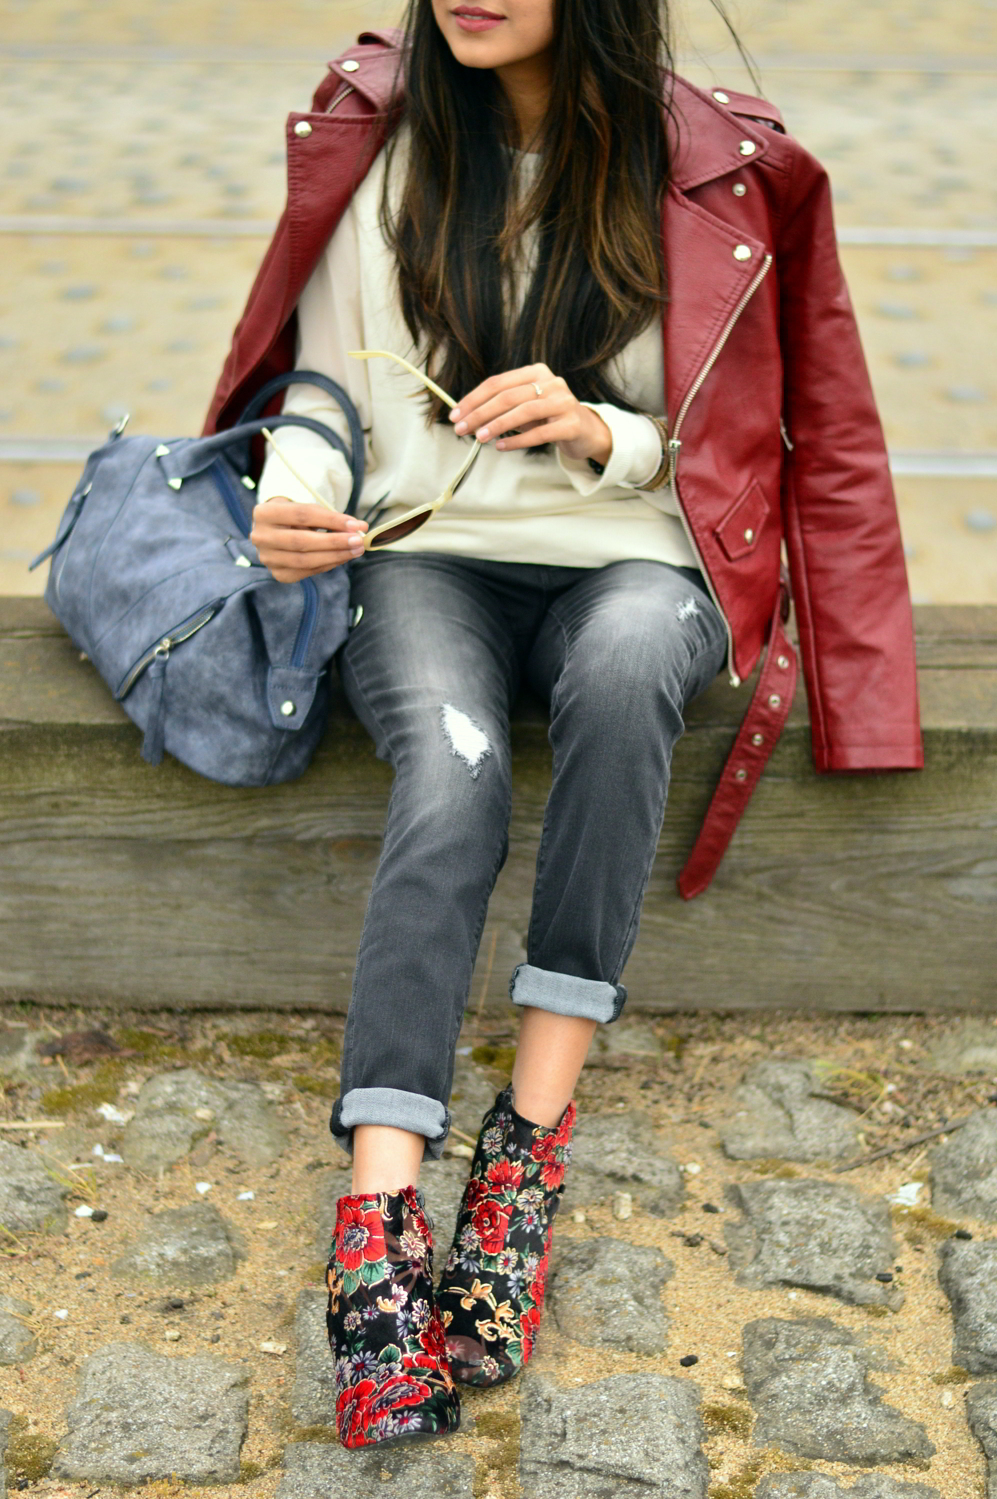 spring-layers-basics-san-francisco-floral-velvet-boots-blogger-outfit 4